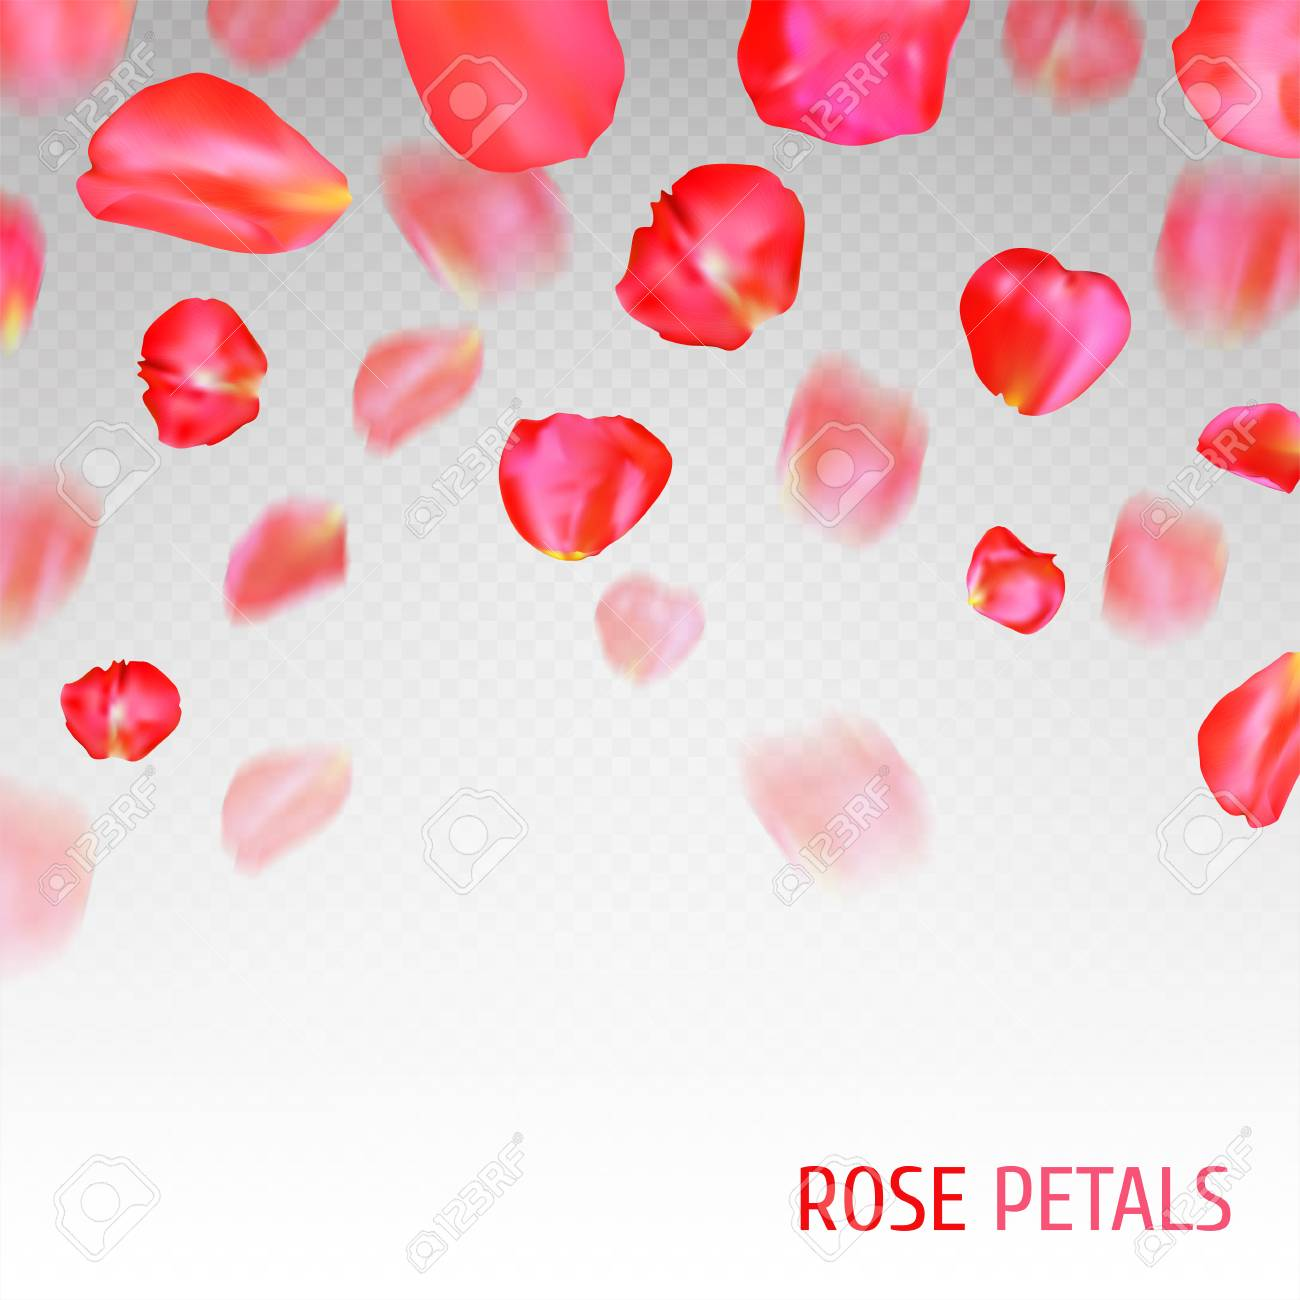 a lot of falling red rose petals on transparent background vector